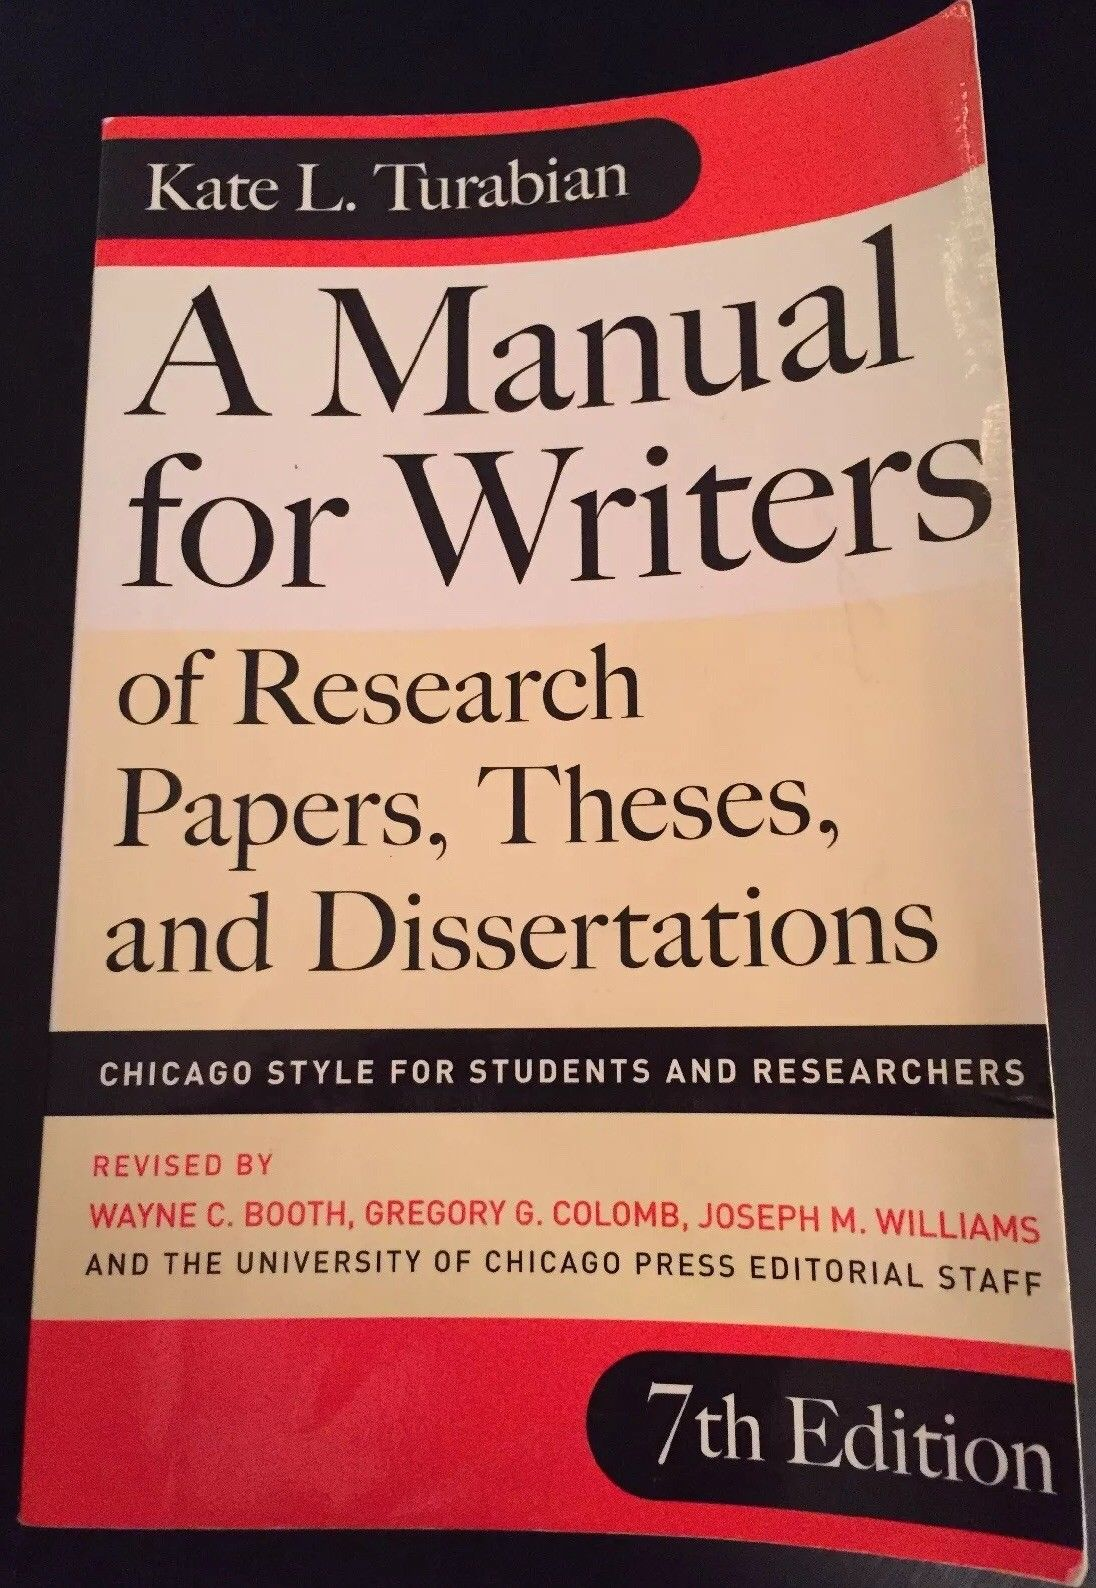 018 Research Paper Manual For Writers Of Papers Theses And Dissertations S Magnificent A 8th Pdf Amazon Full